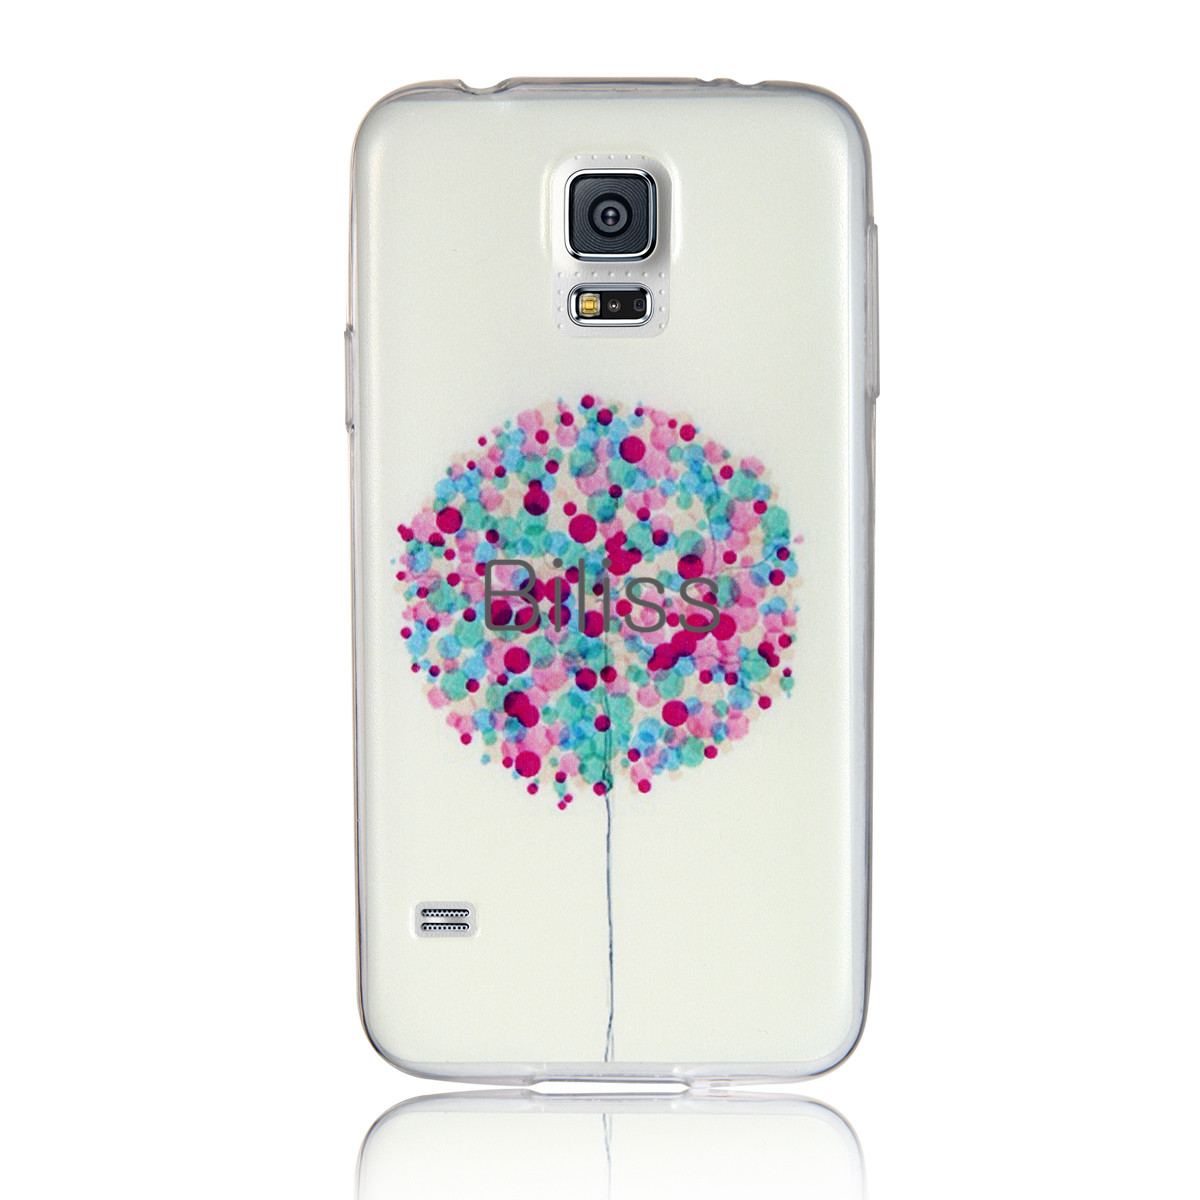 Hot sale Cheapest Fashion 0.3mm Ultra Thin Colorful balloons Pattern Soft TPU Case Cover For Samsung Galaxy S5 Cell Phone Shell(China (Mainland))